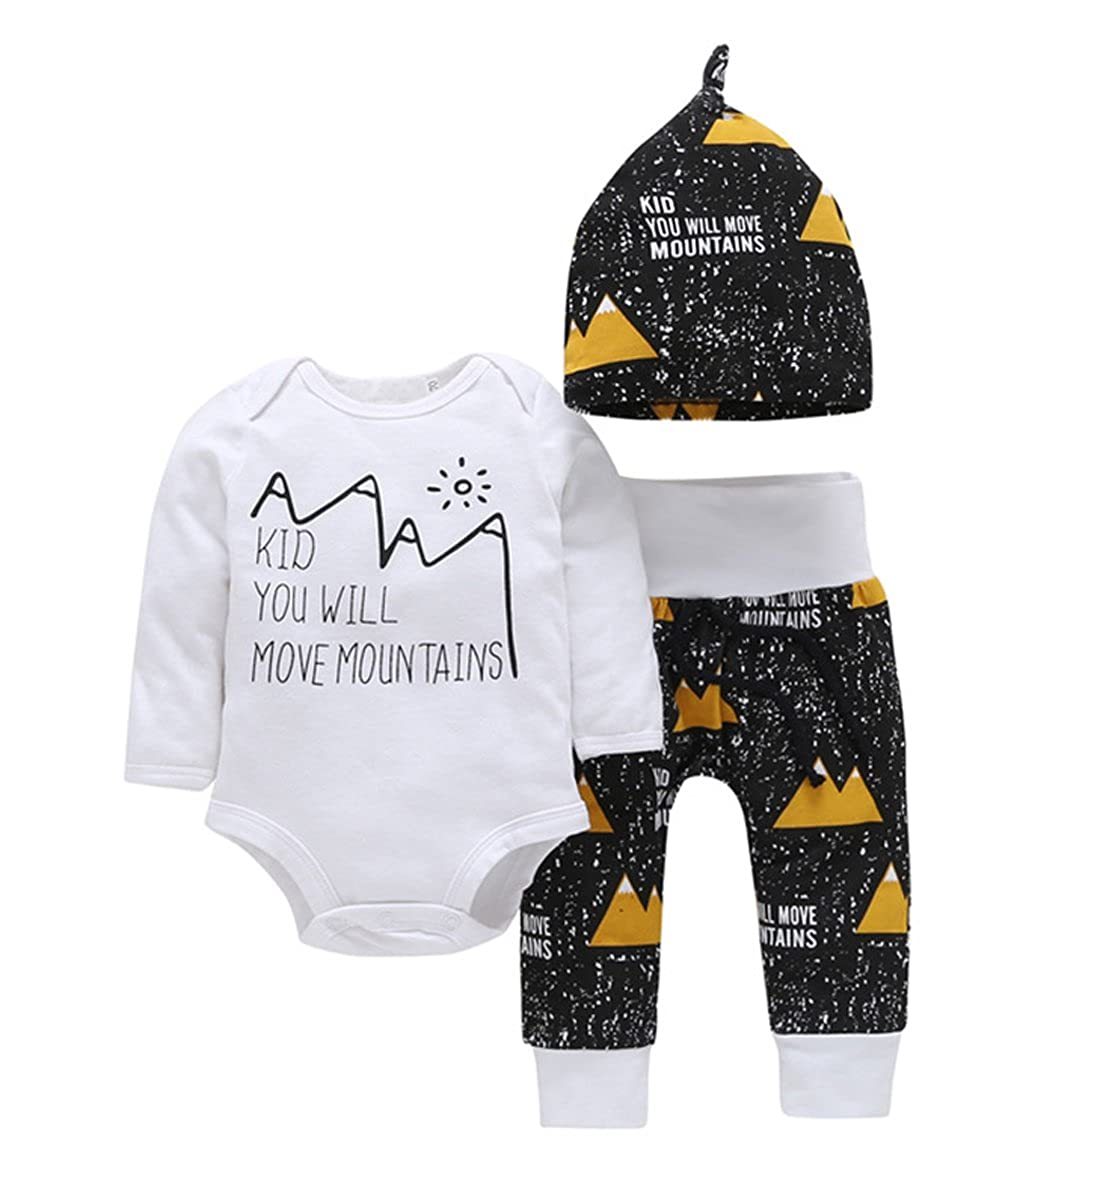 Newborn Baby Boys Girls Mountains Funny Bodysuits Cotton Pants Hat 3pcs Outfits Set